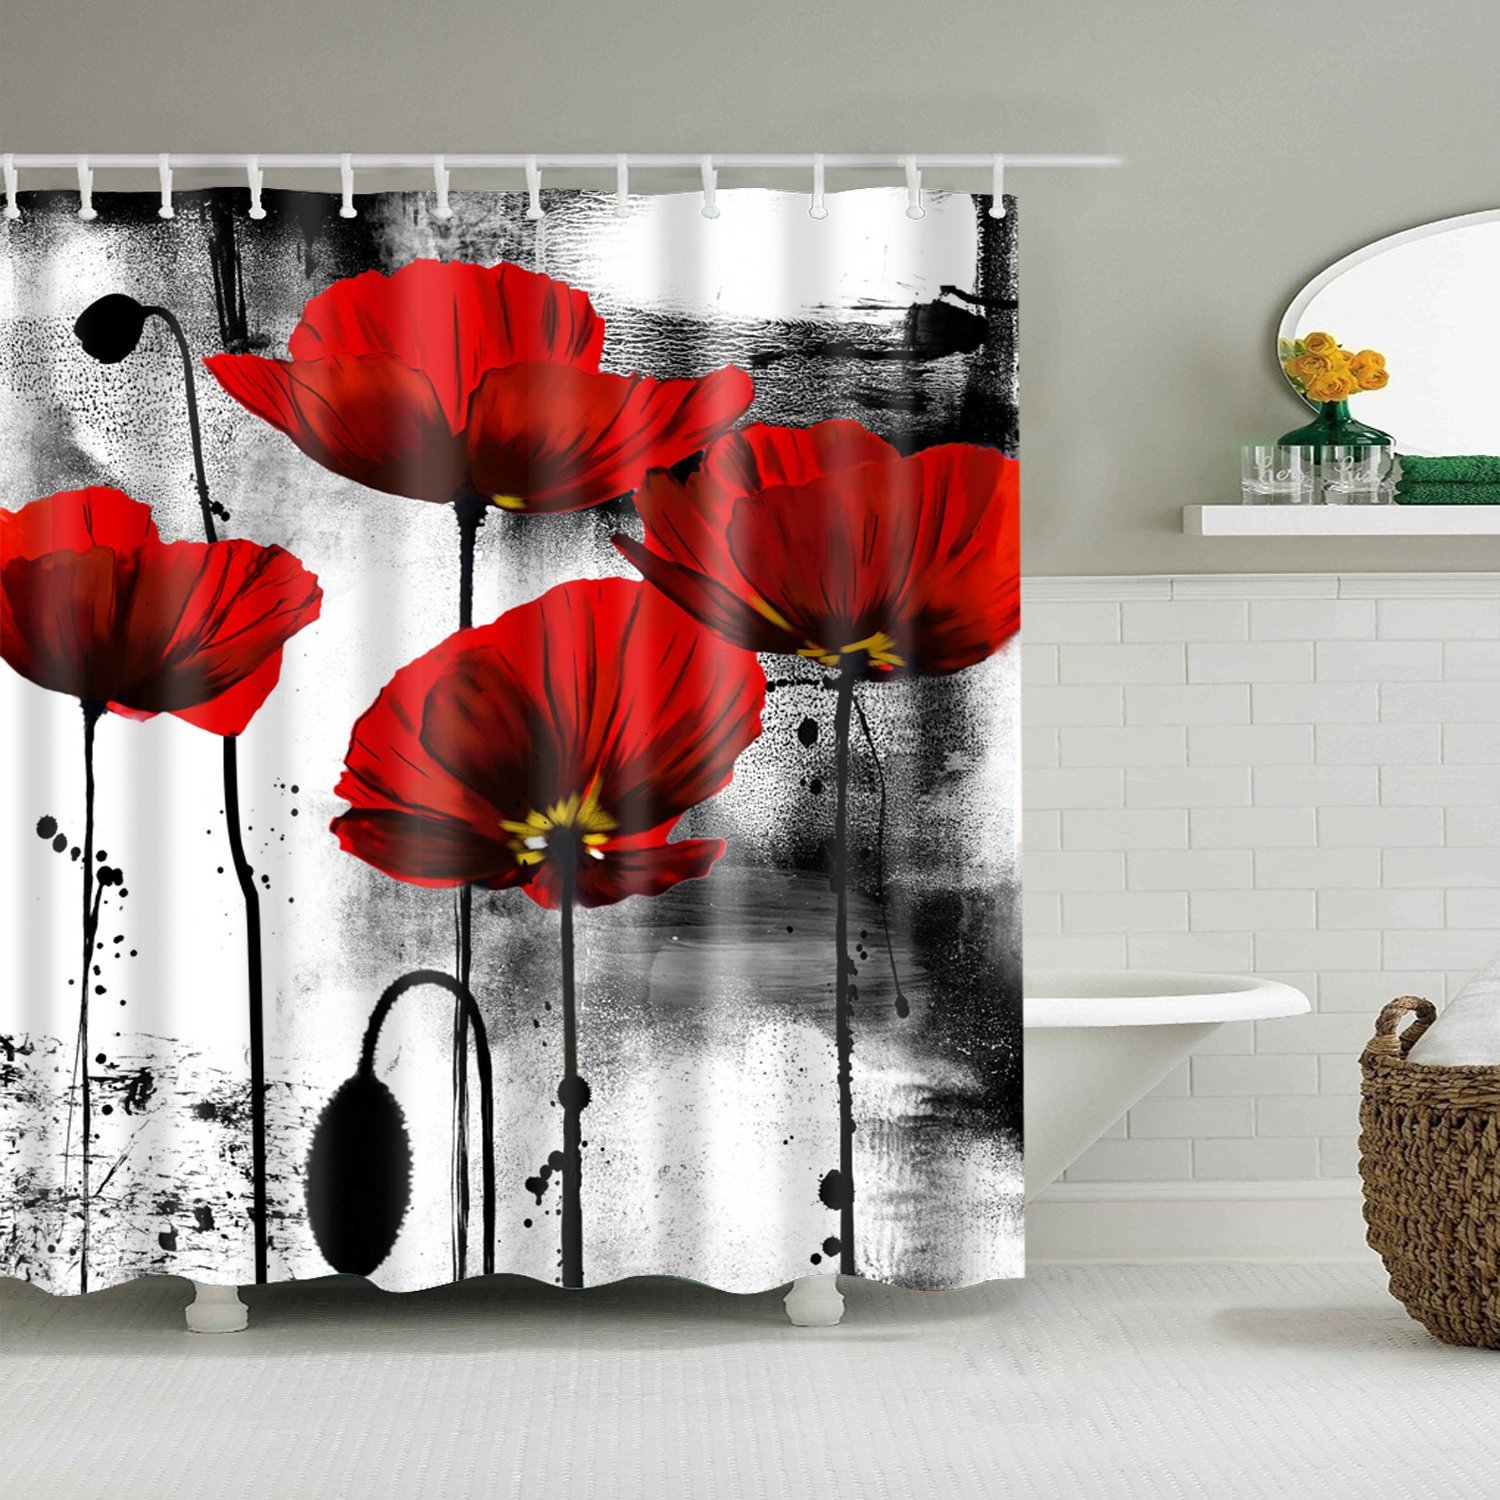 Chengsan Floral Shower Curtain Classic Decor by, Flowers Chic Floral Picture Art Design, Polyester Fabric Shower Curtain, Black And White Red(CS-YL73)